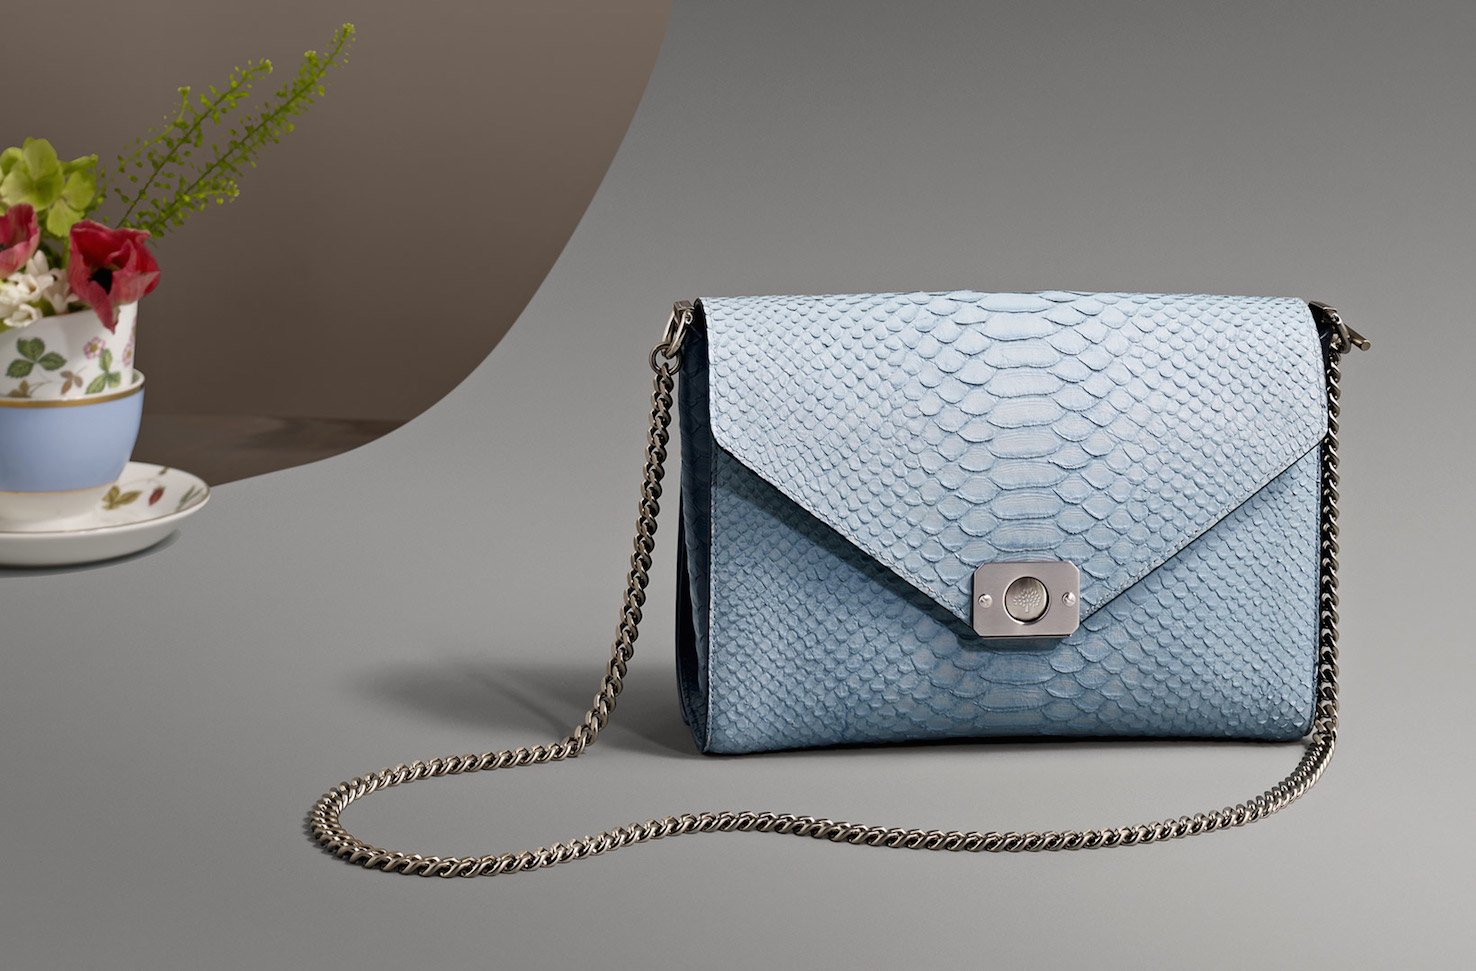 55617daaf828 ... new zealand pre order your new mulberry delphie bag now 372b8 87294